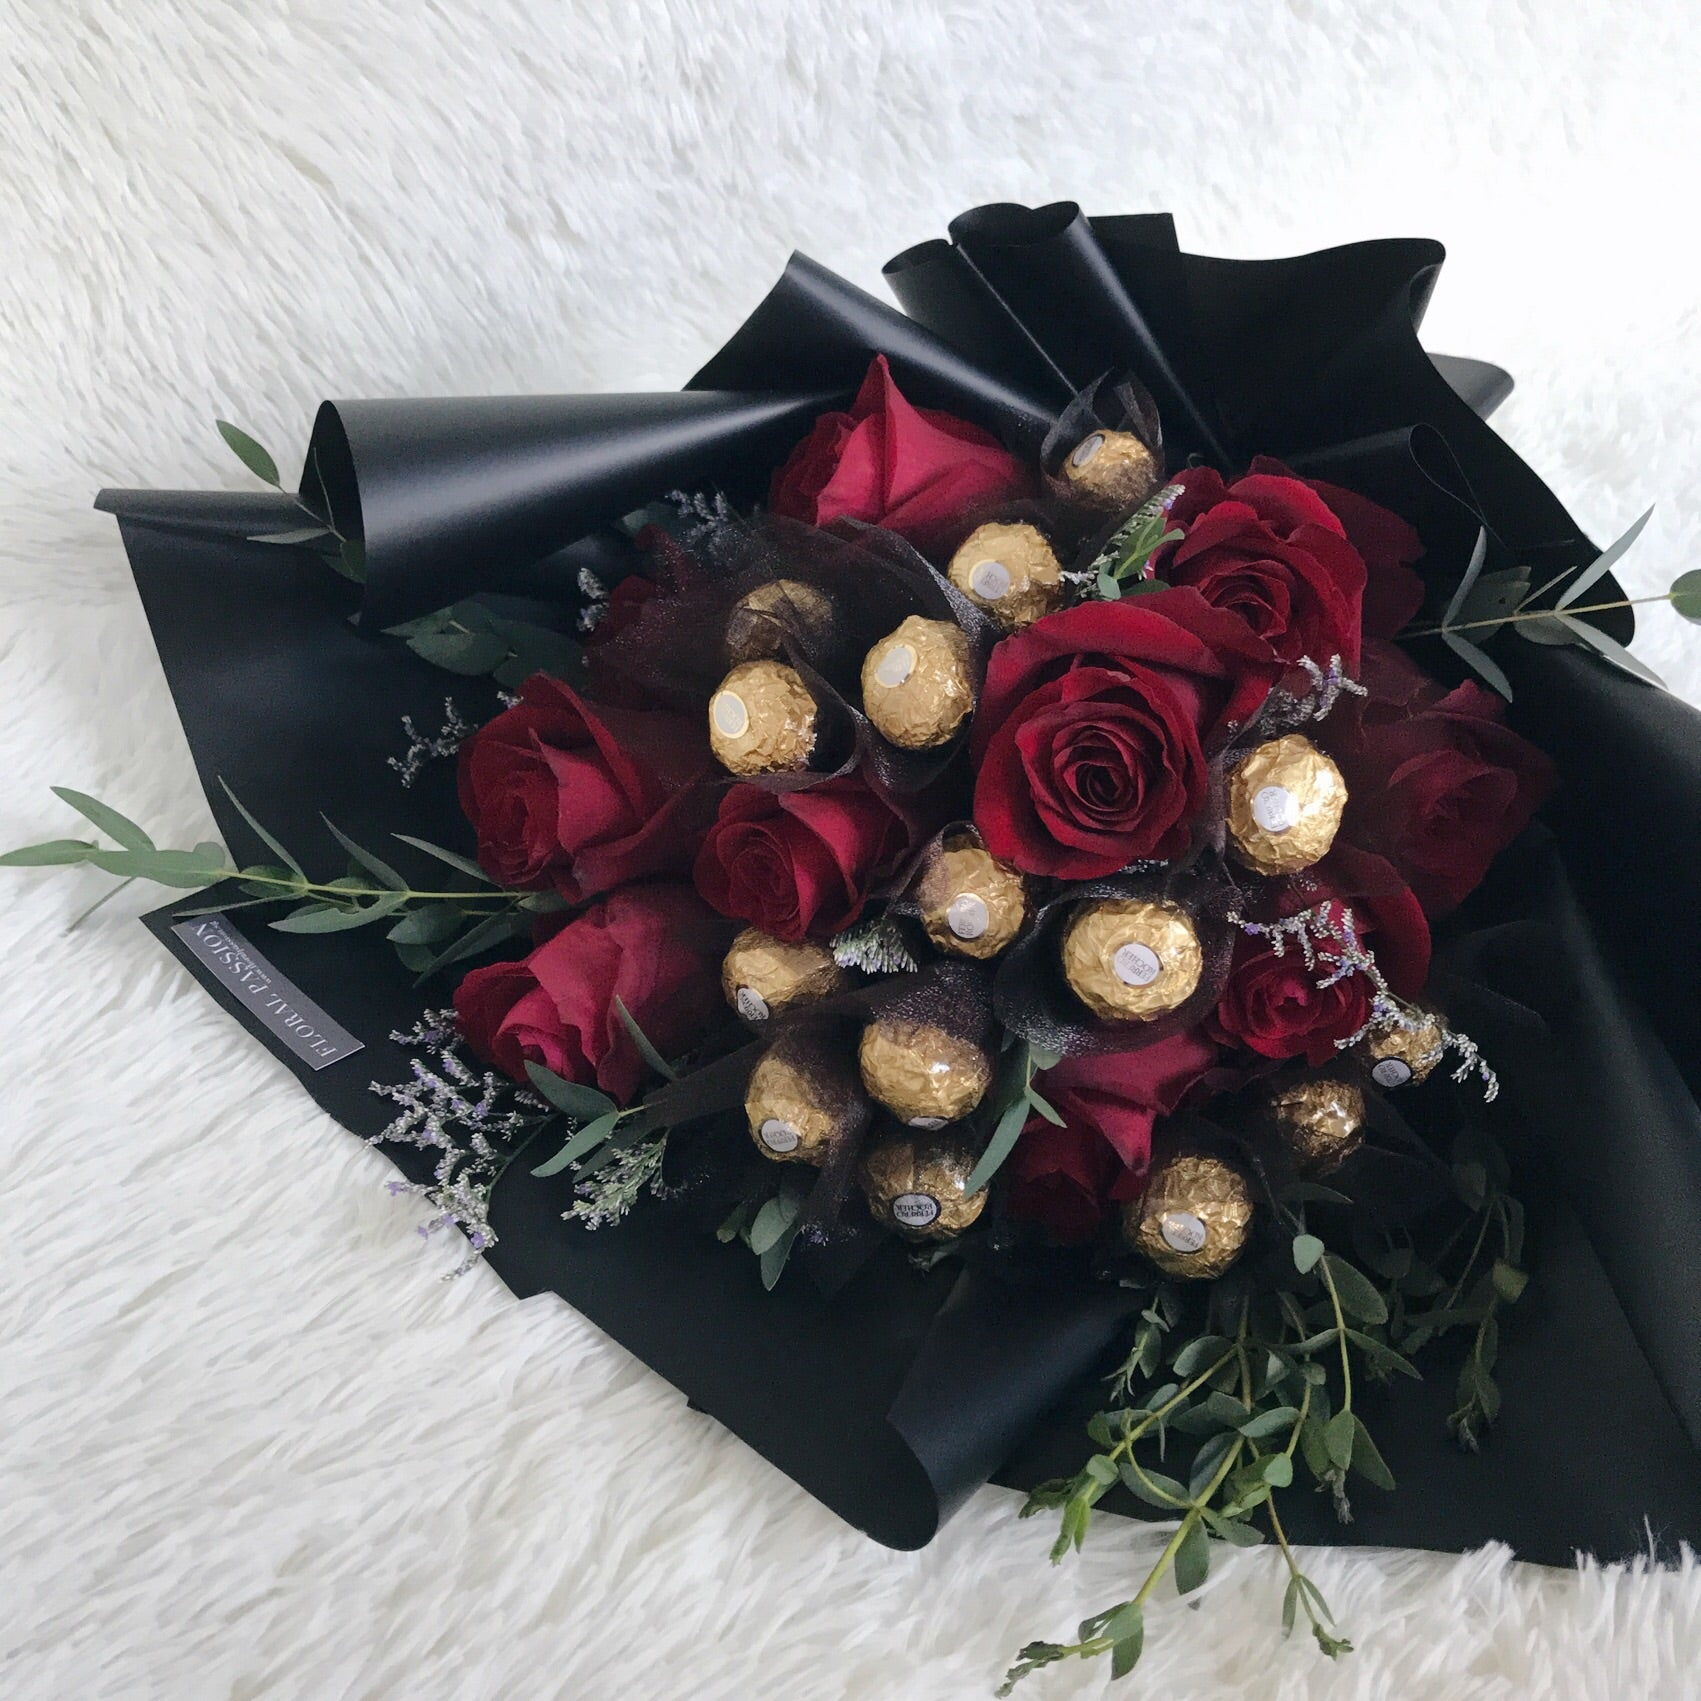 Singapore Online Florist - Hand Tied With Love! – Floral Passion SG